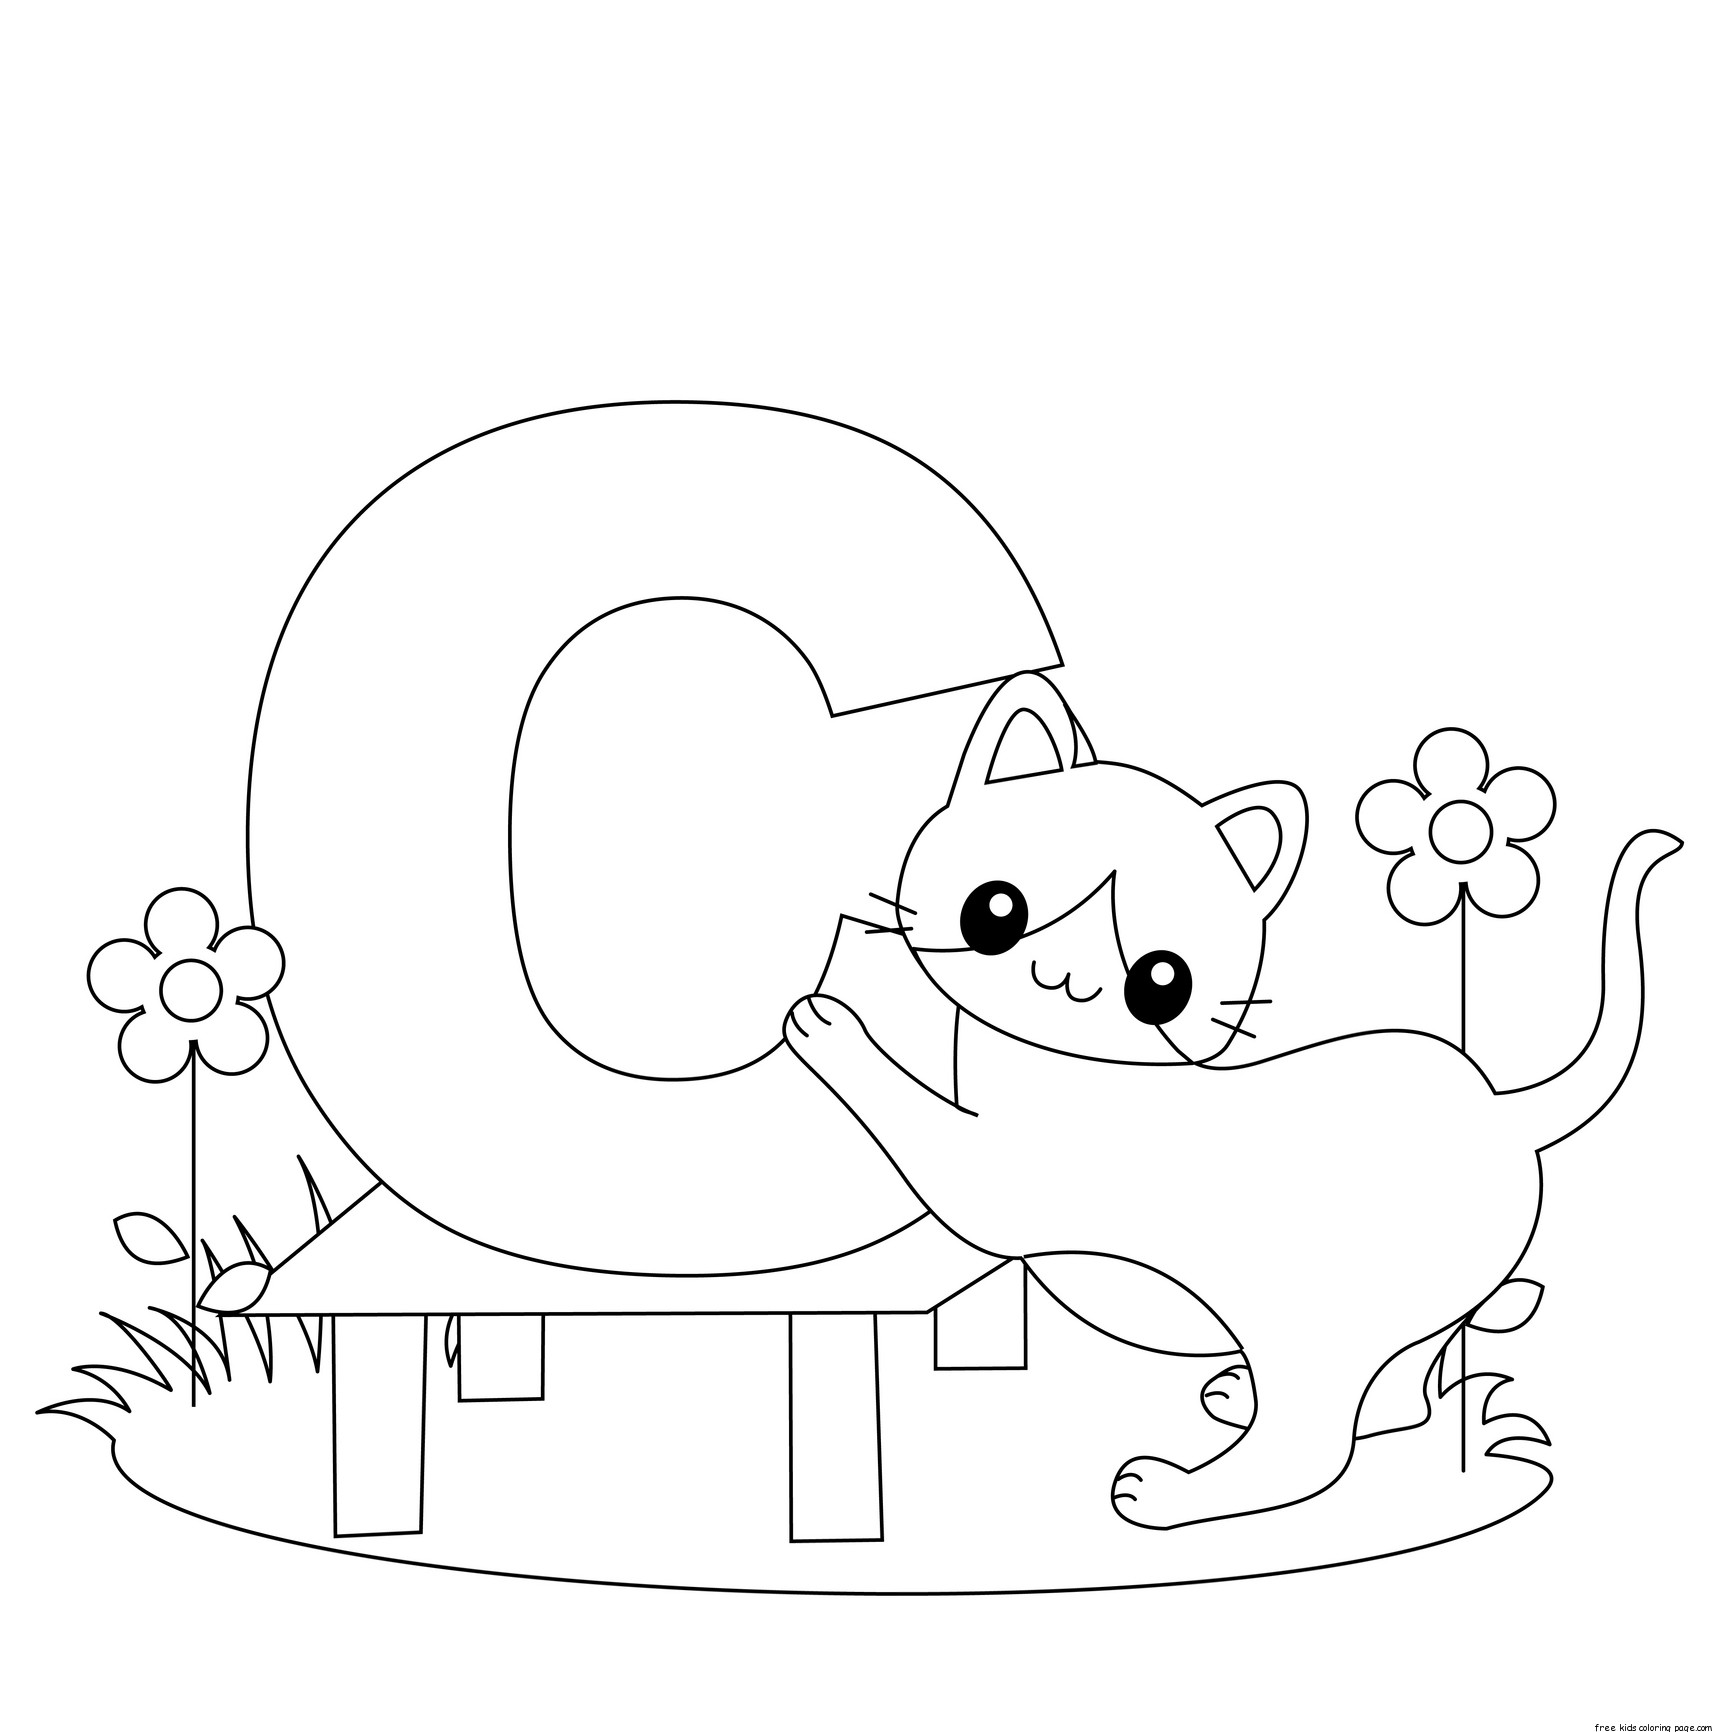 coloring alphabet animals 1123 best coloring drawing and clip art images on coloring alphabet animals